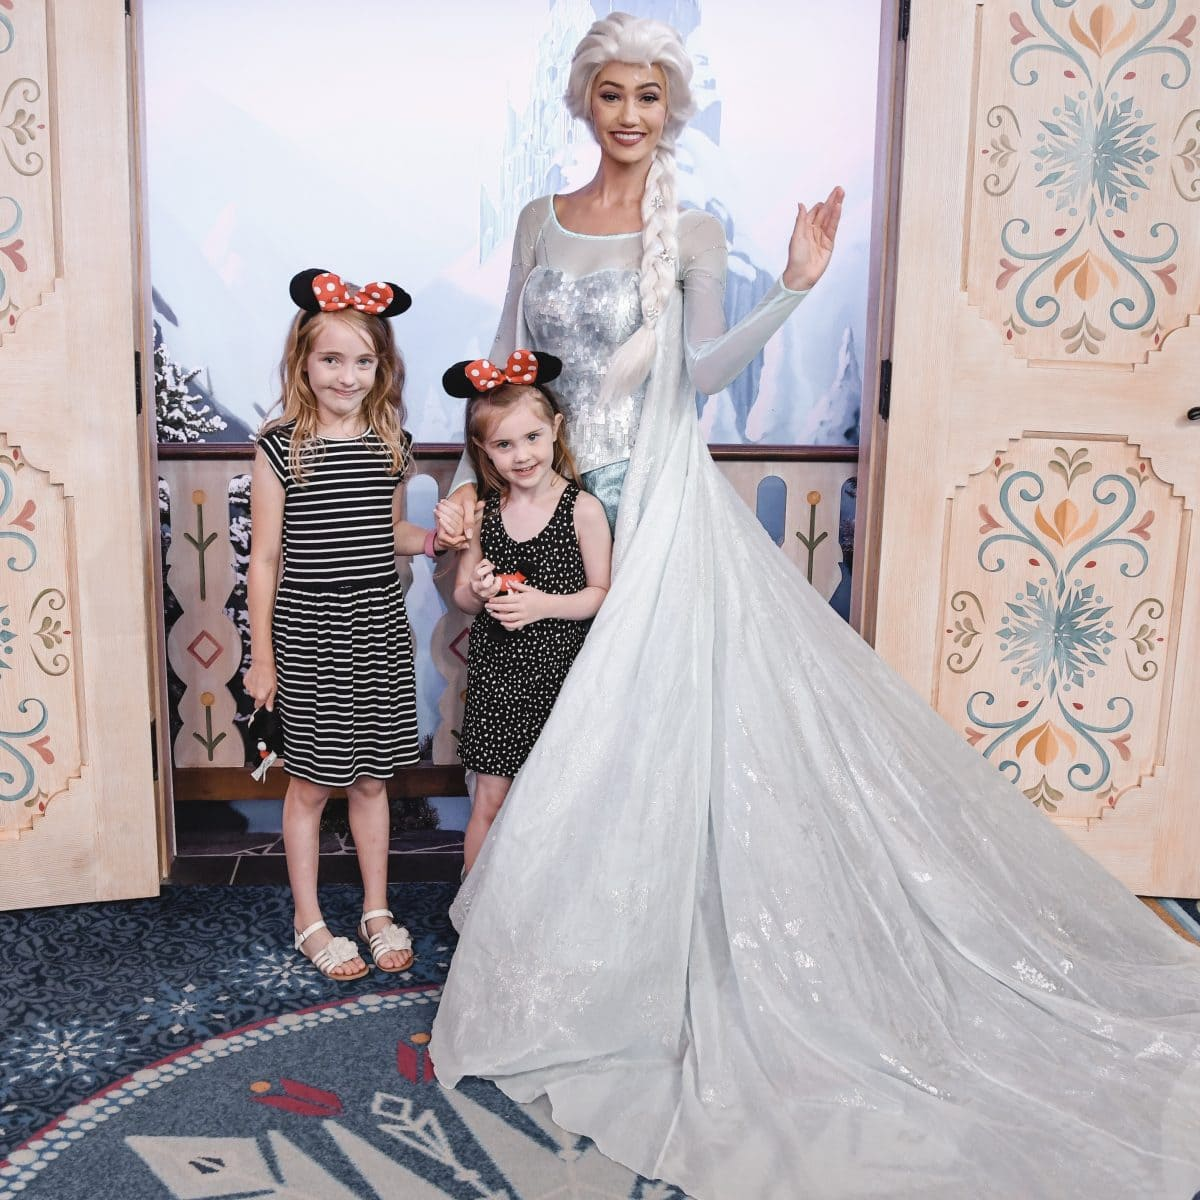 Meeting Elsa in Epcot